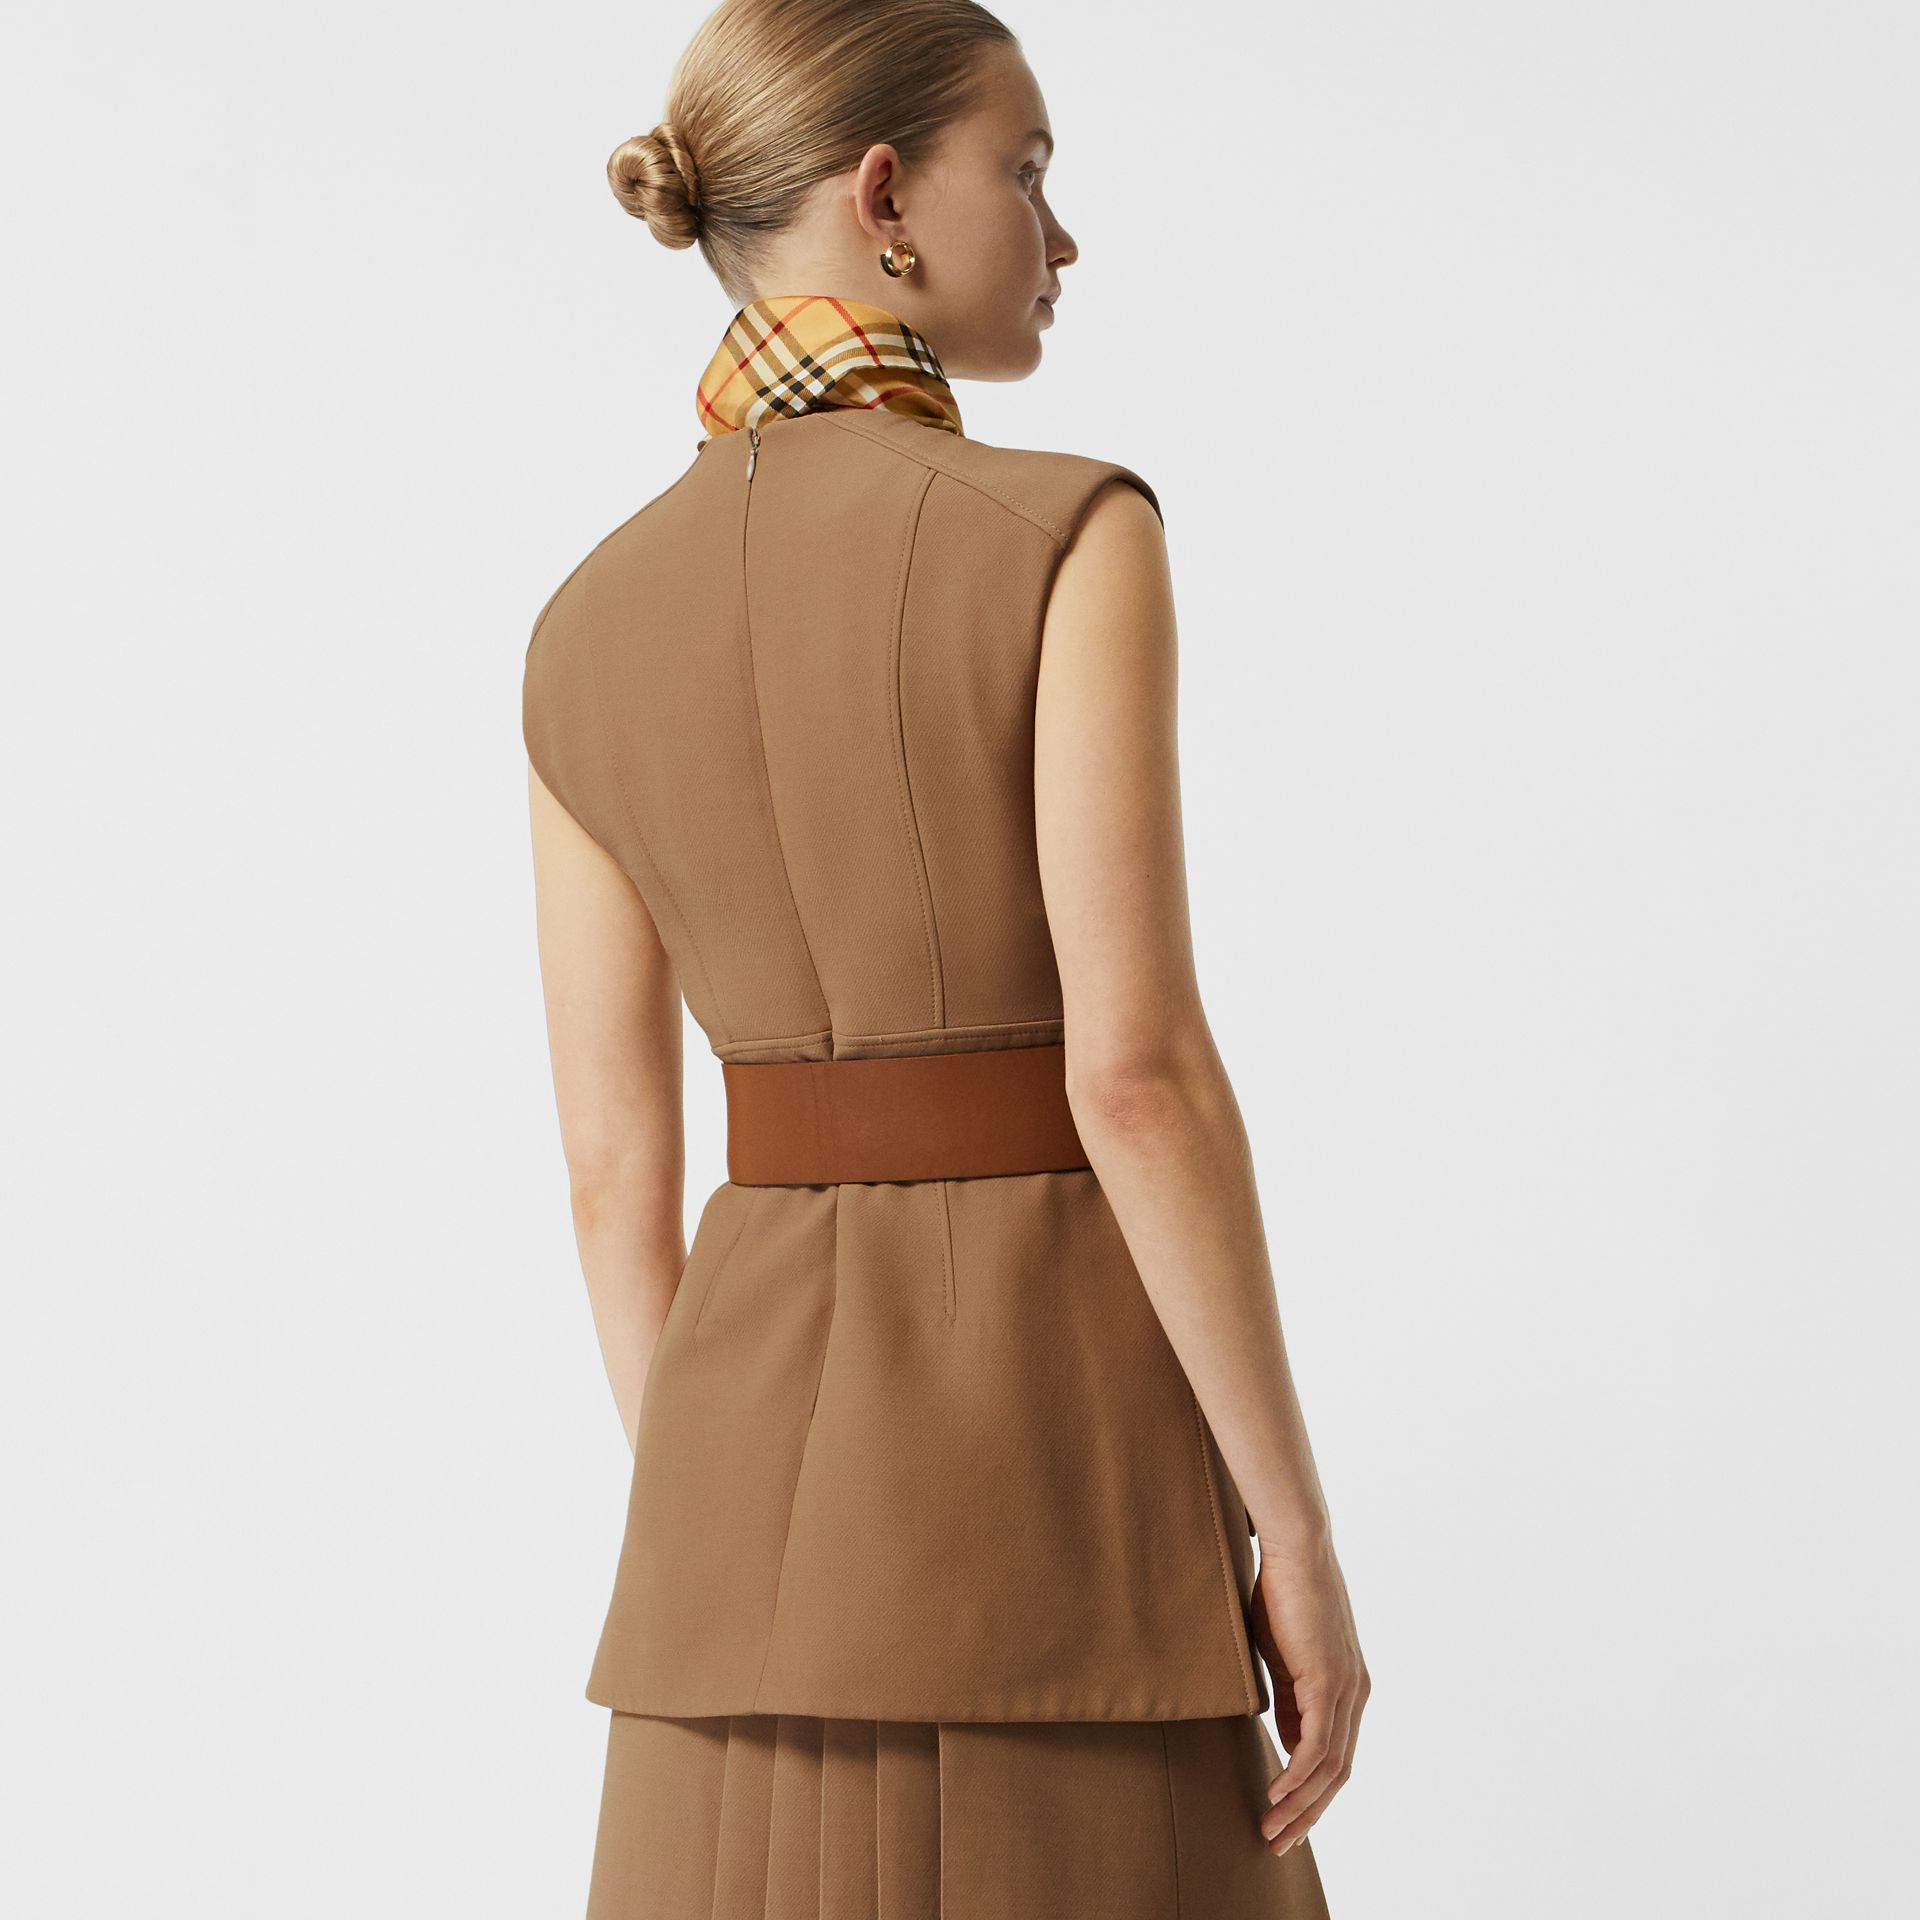 Keyhole Detail Sleeveless Wool Silk Top in Camel - Women | Burberry Australia - gallery image 2